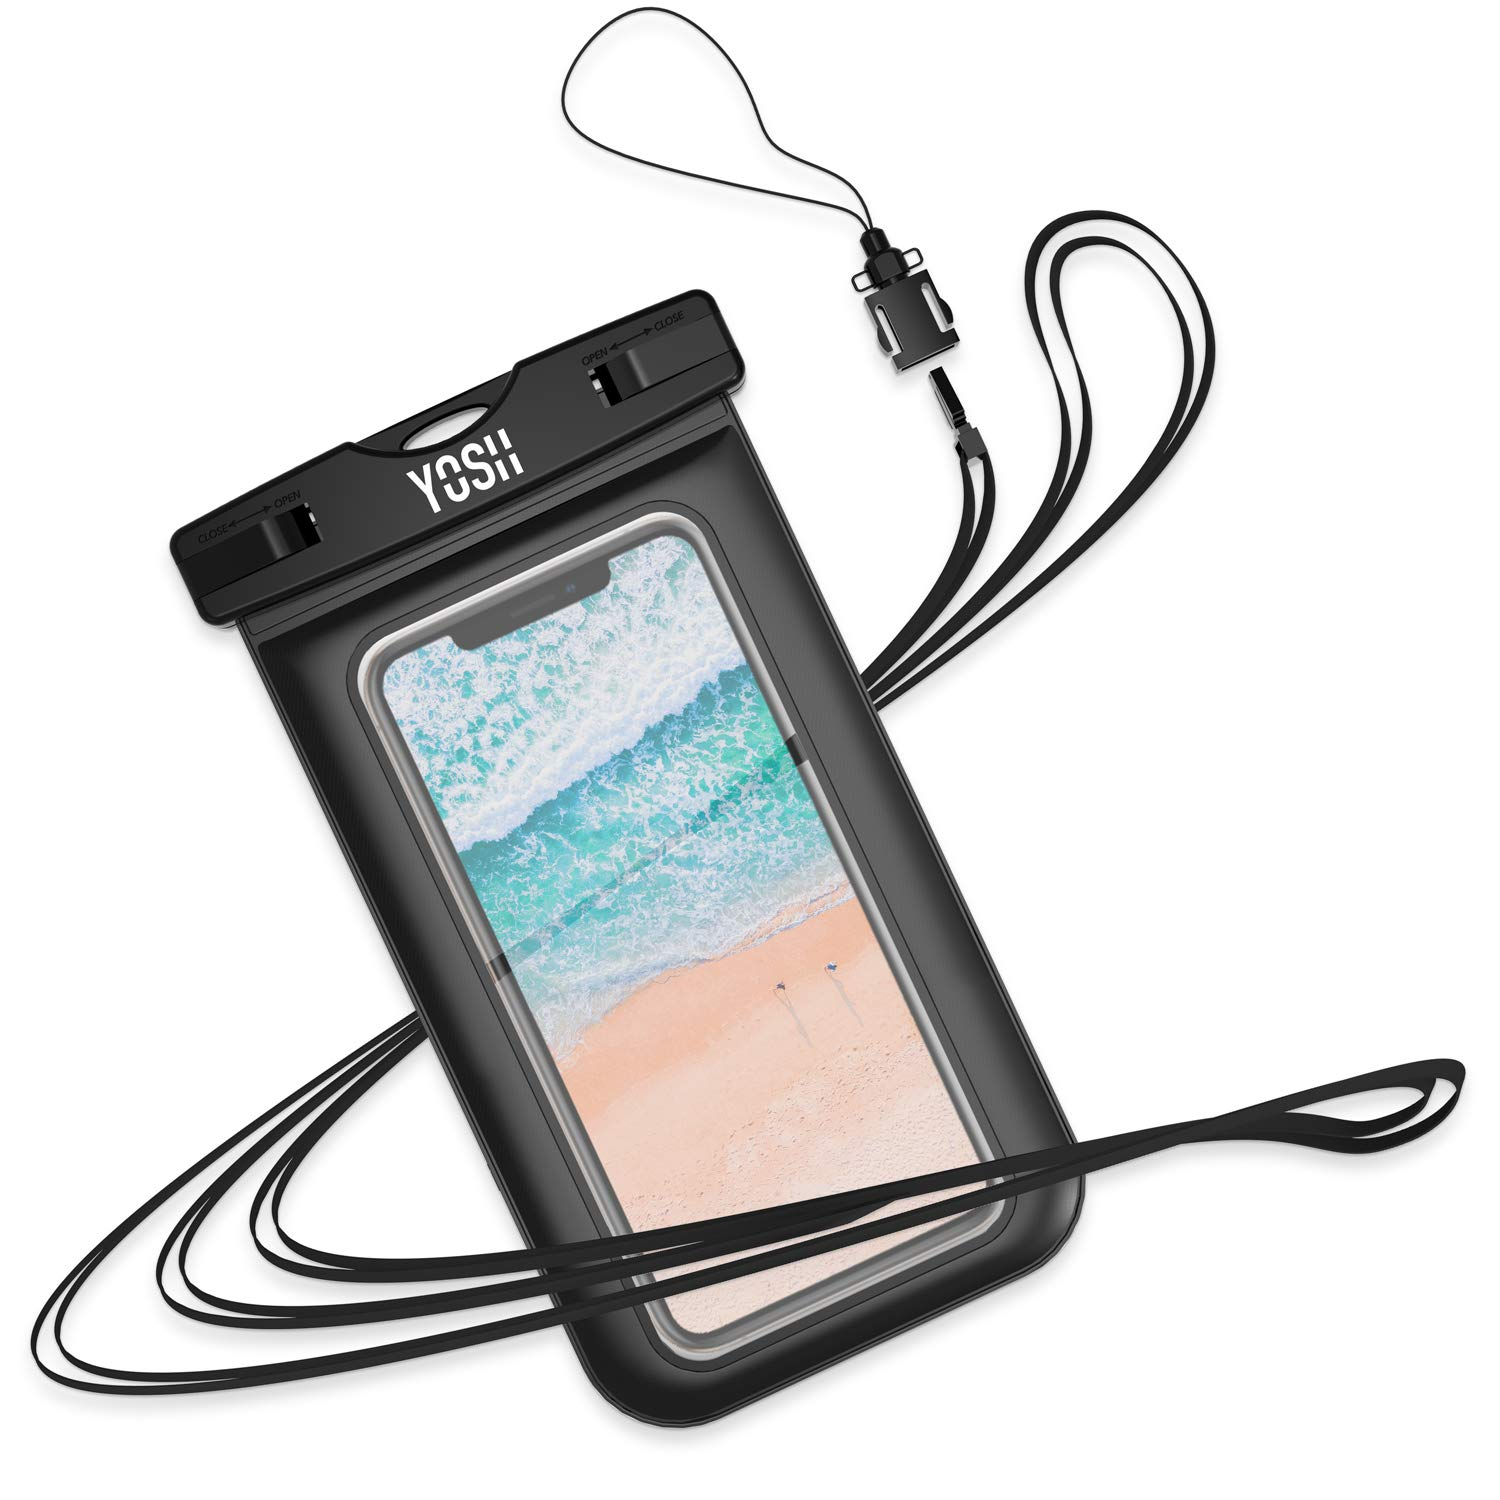 """Waterproof Phone Case YOSH IPX8 Watertight Sealed Underwater Waterproof Phone Cases Pouch Bag Dry Bag with Lanyard for iPhone X Xr 6s 6 Plus Samsung S9 S8 S7 J3 Huawei Moto G6 Nokia LG up to 6"""" product image"""